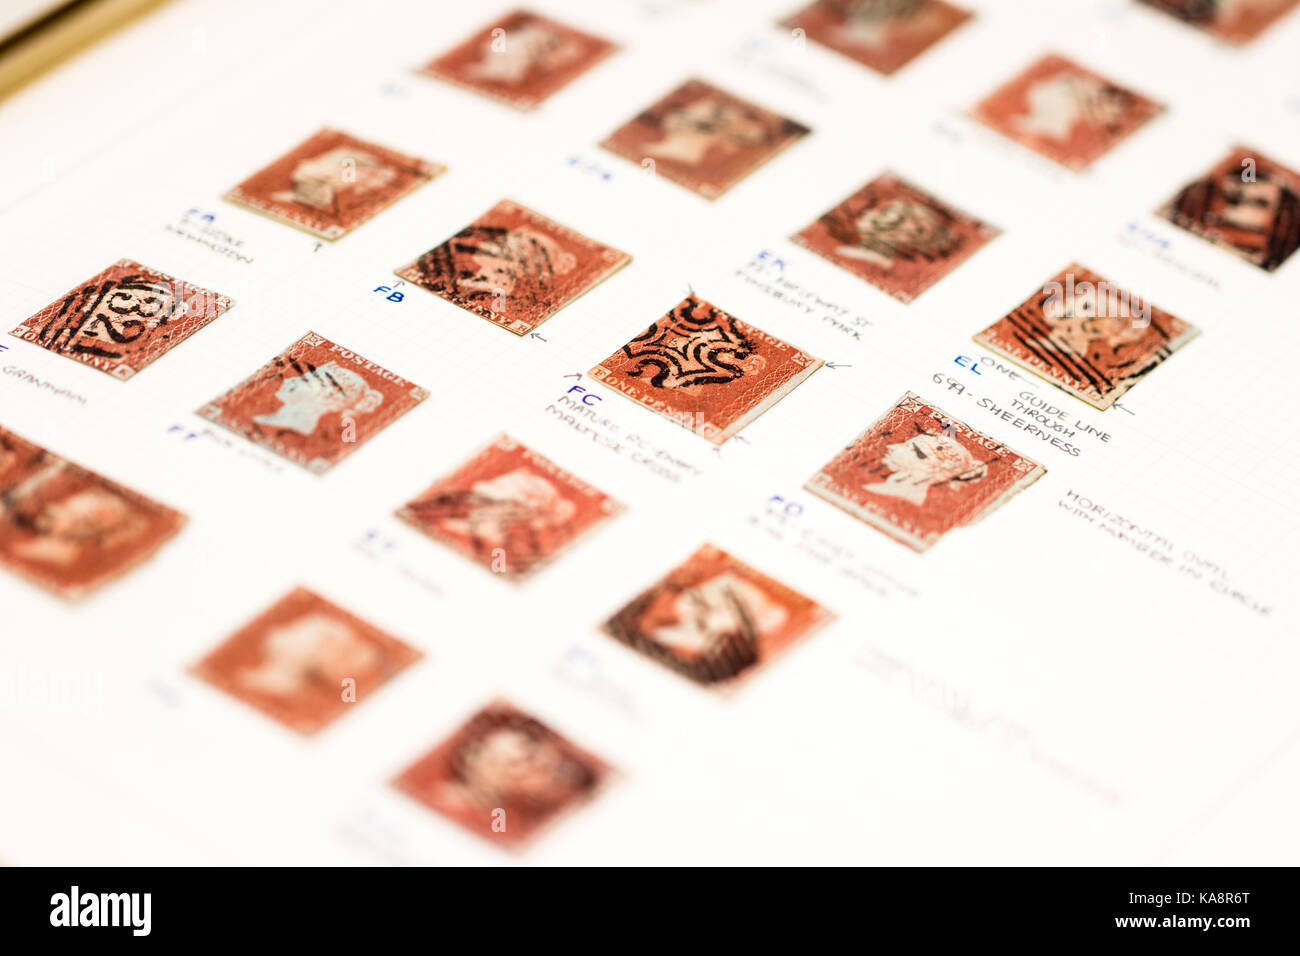 England. Victoria Penny red stamps with annotations in stamp album. Stamp collecting hobby. Philately. - Stock Image